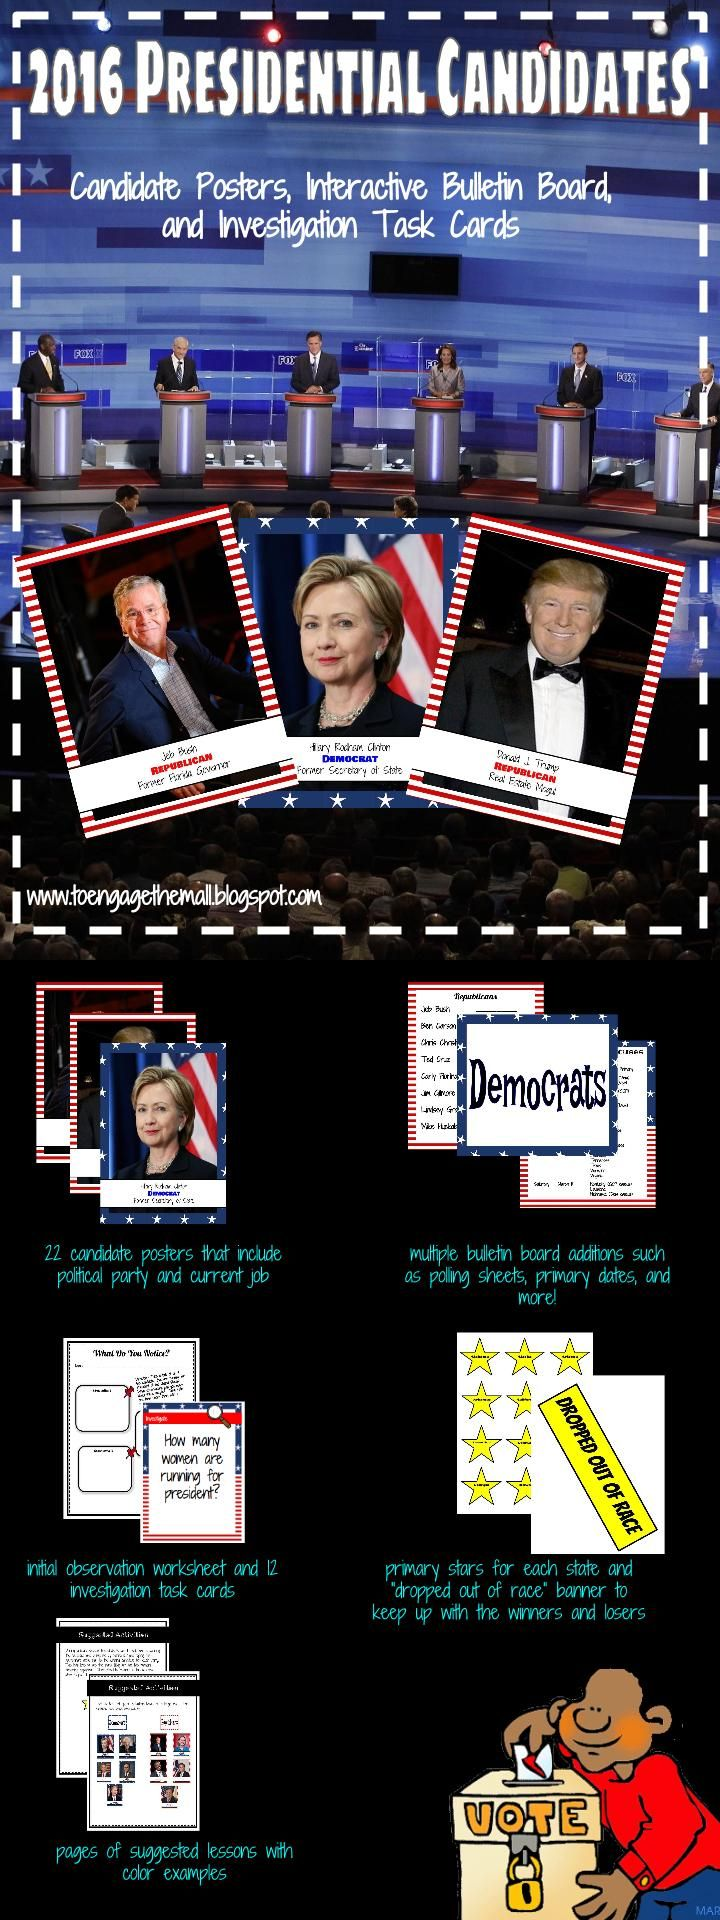 Election year can be very exciting! This activity pack allows you and your students to experience and interact with the Democratic and Republican candidates as well as track them through the primaries.